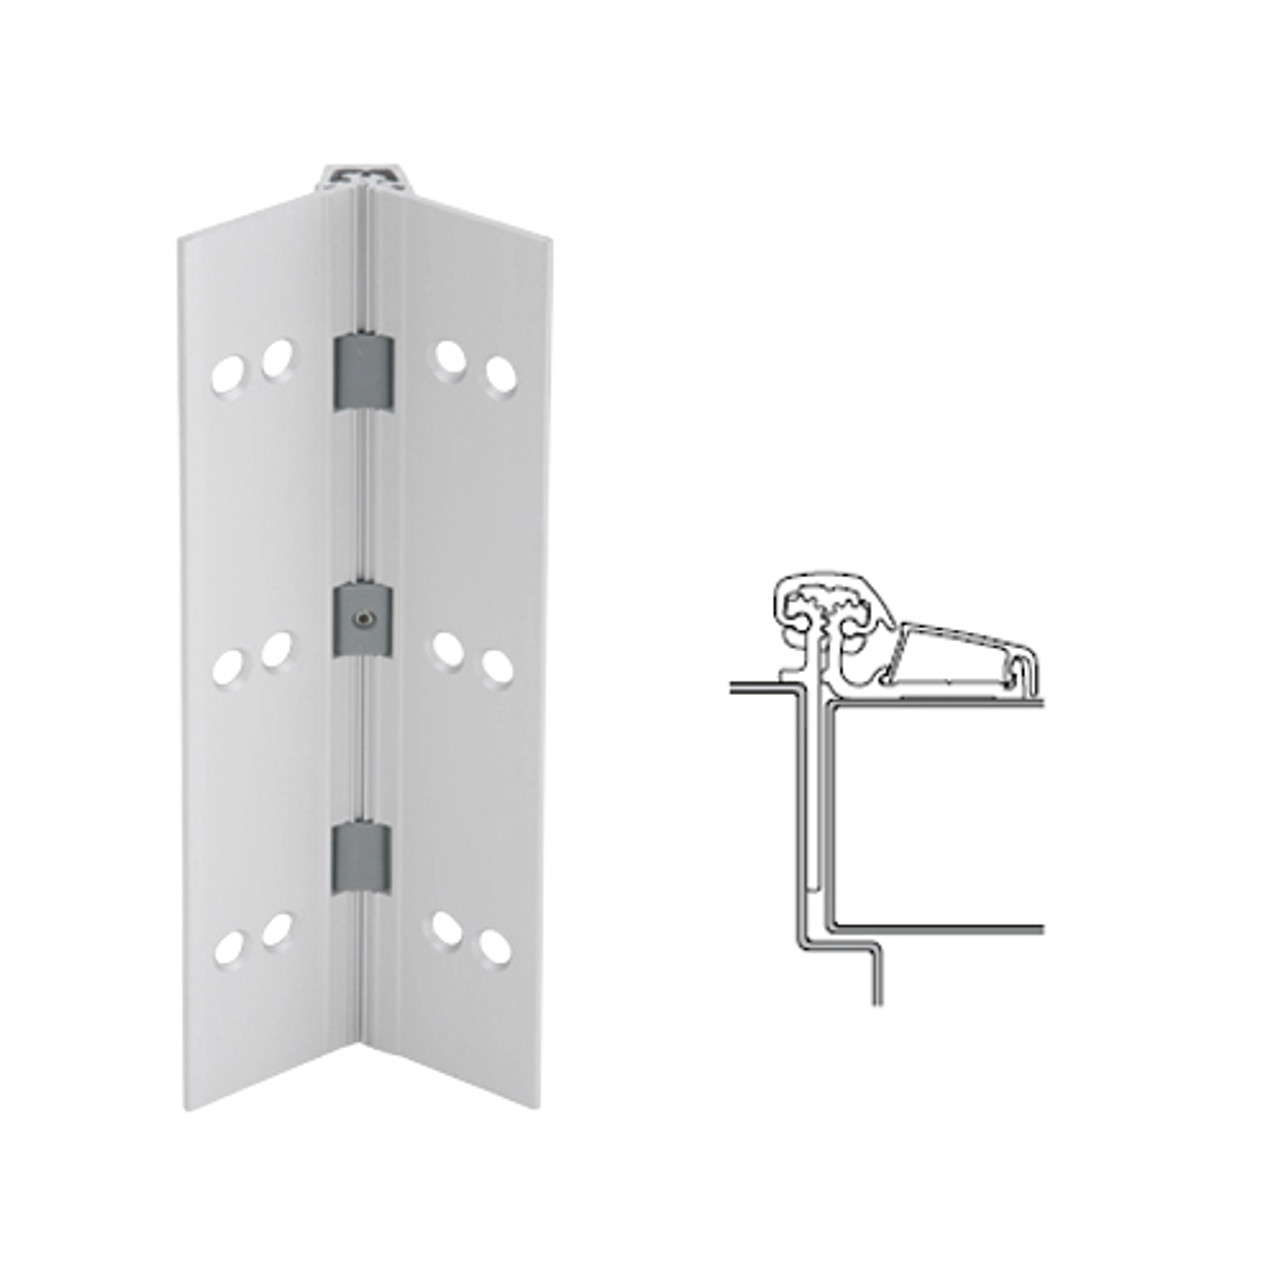 053XY-US28-95-SECWDWD IVES Adjustable Half Surface Continuous Geared Hinges with Security Screws - Hex Pin Drive in Satin Aluminum